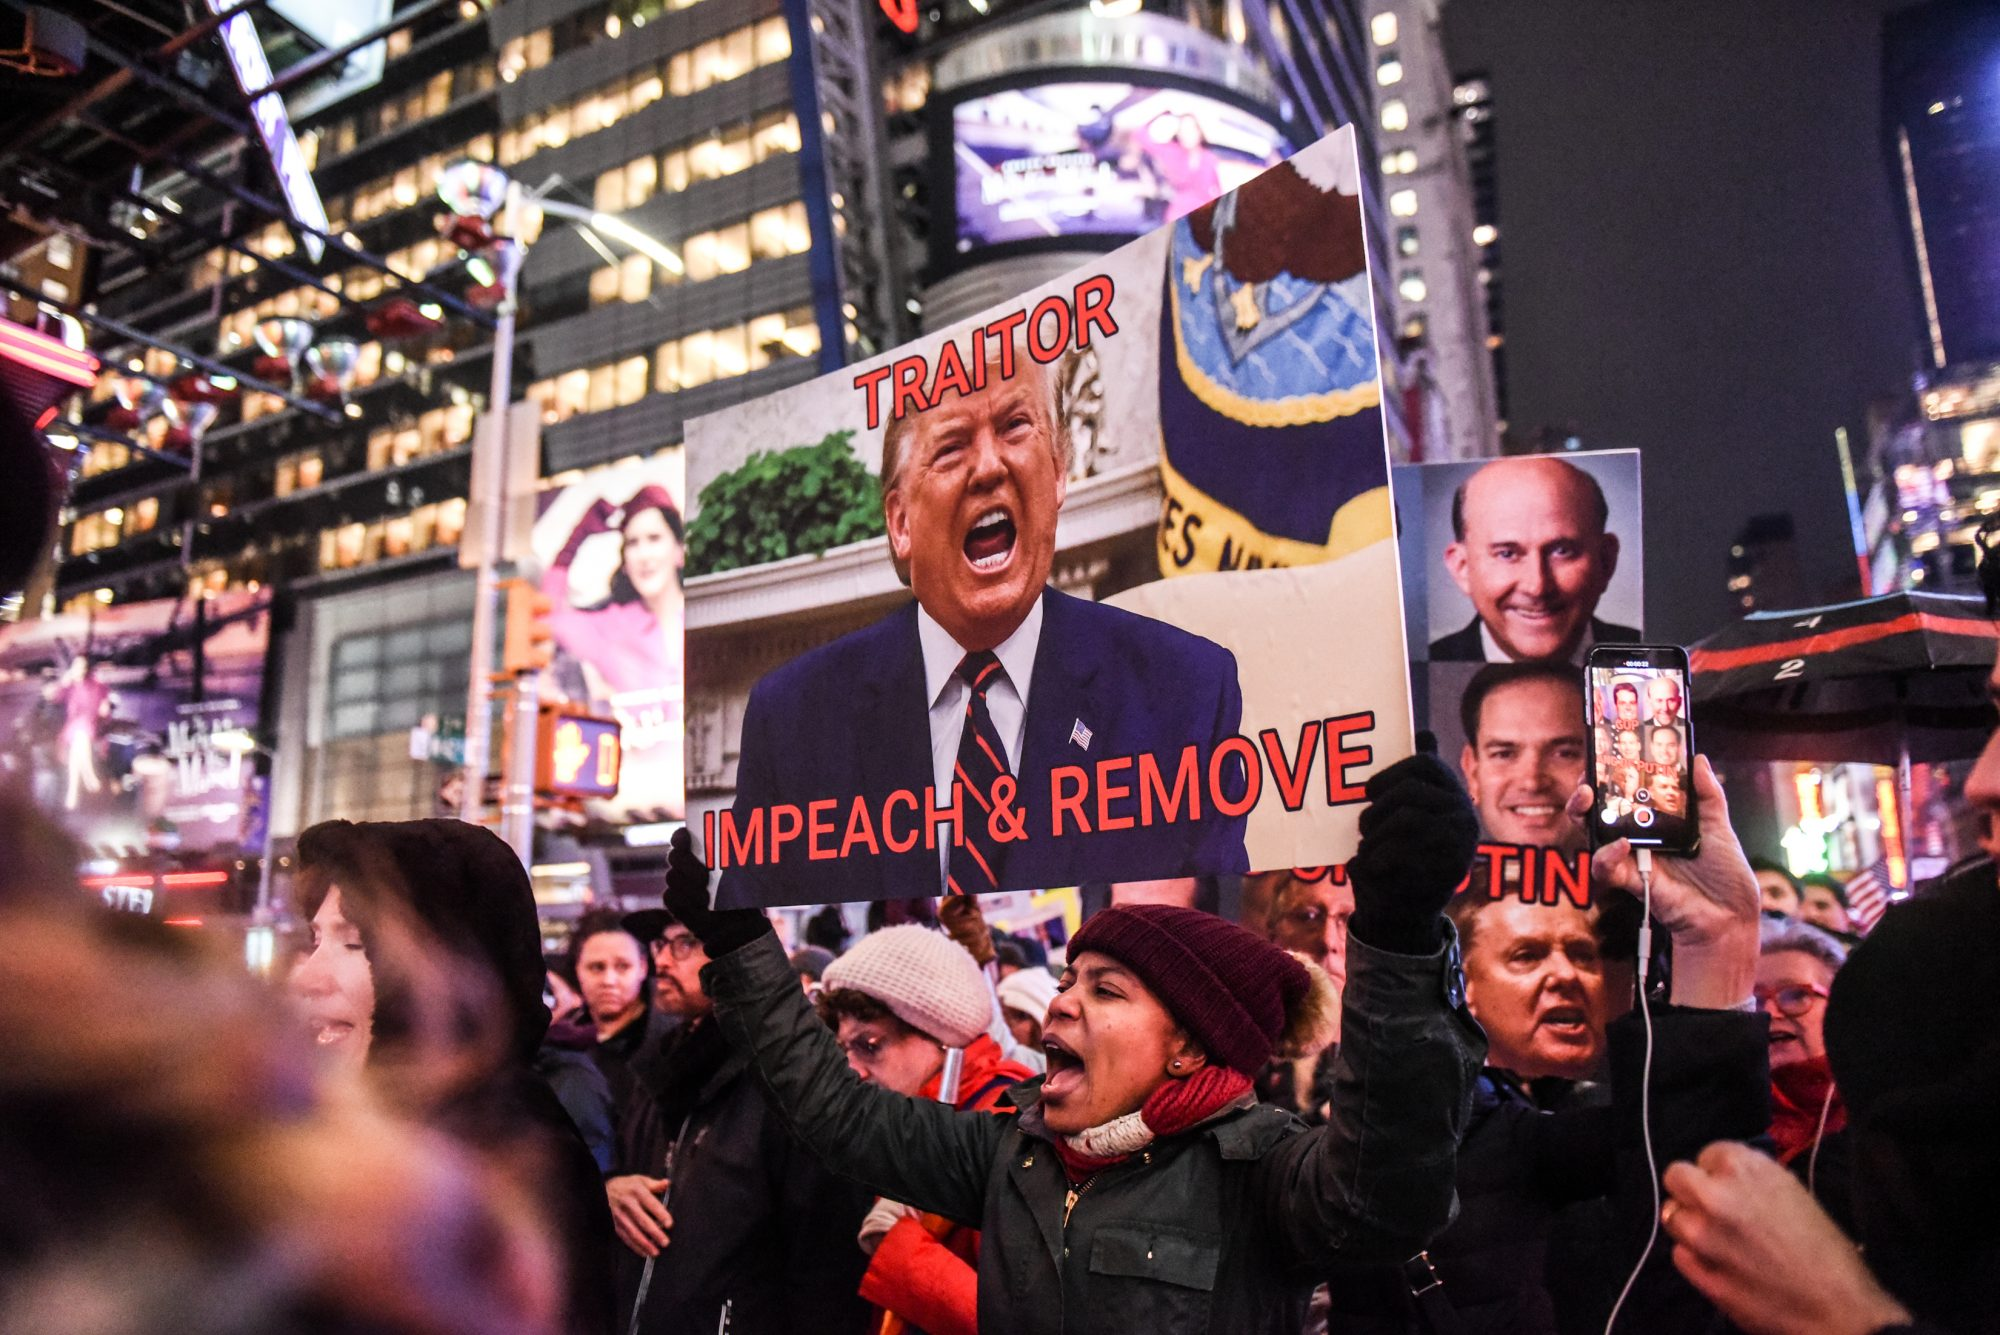 Rallies Across The Country Urging Congress To Impeach President Trump Held On Eve Of House Vote